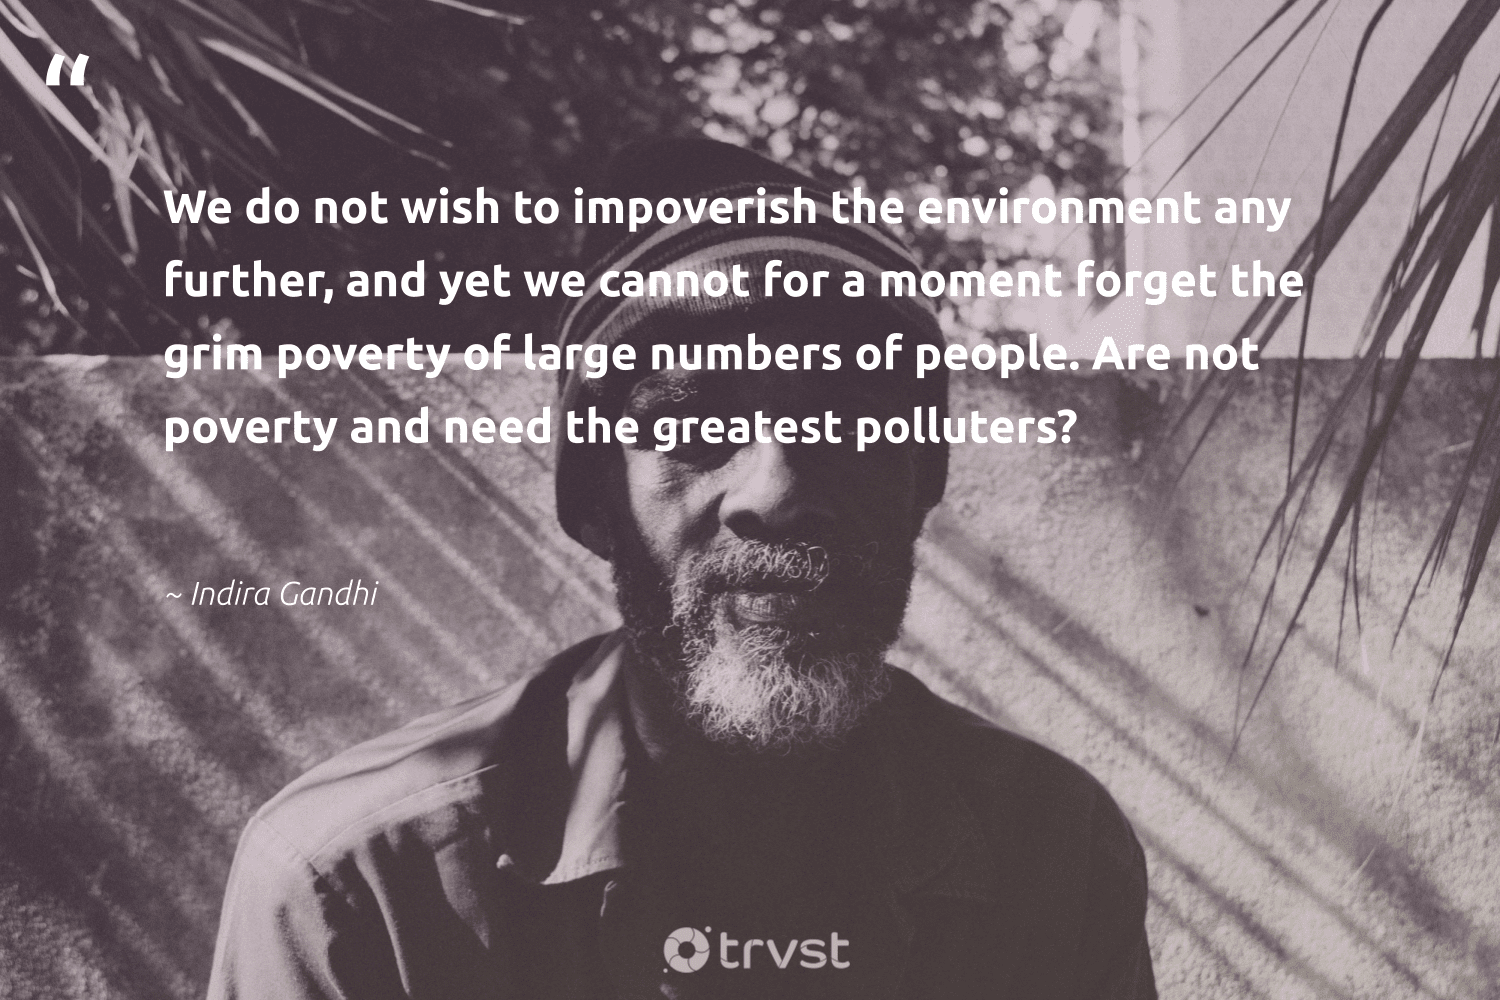 """""""We do not wish to impoverish the environment any further, and yet we cannot for a moment forget the grim poverty of large numbers of people. Are not poverty and need the greatest polluters?""""  - Indira Gandhi #trvst #quotes #environment #poverty #earth #makeadifference #eco #bethechange #mothernature #equalopportunity #green #changetheworld"""